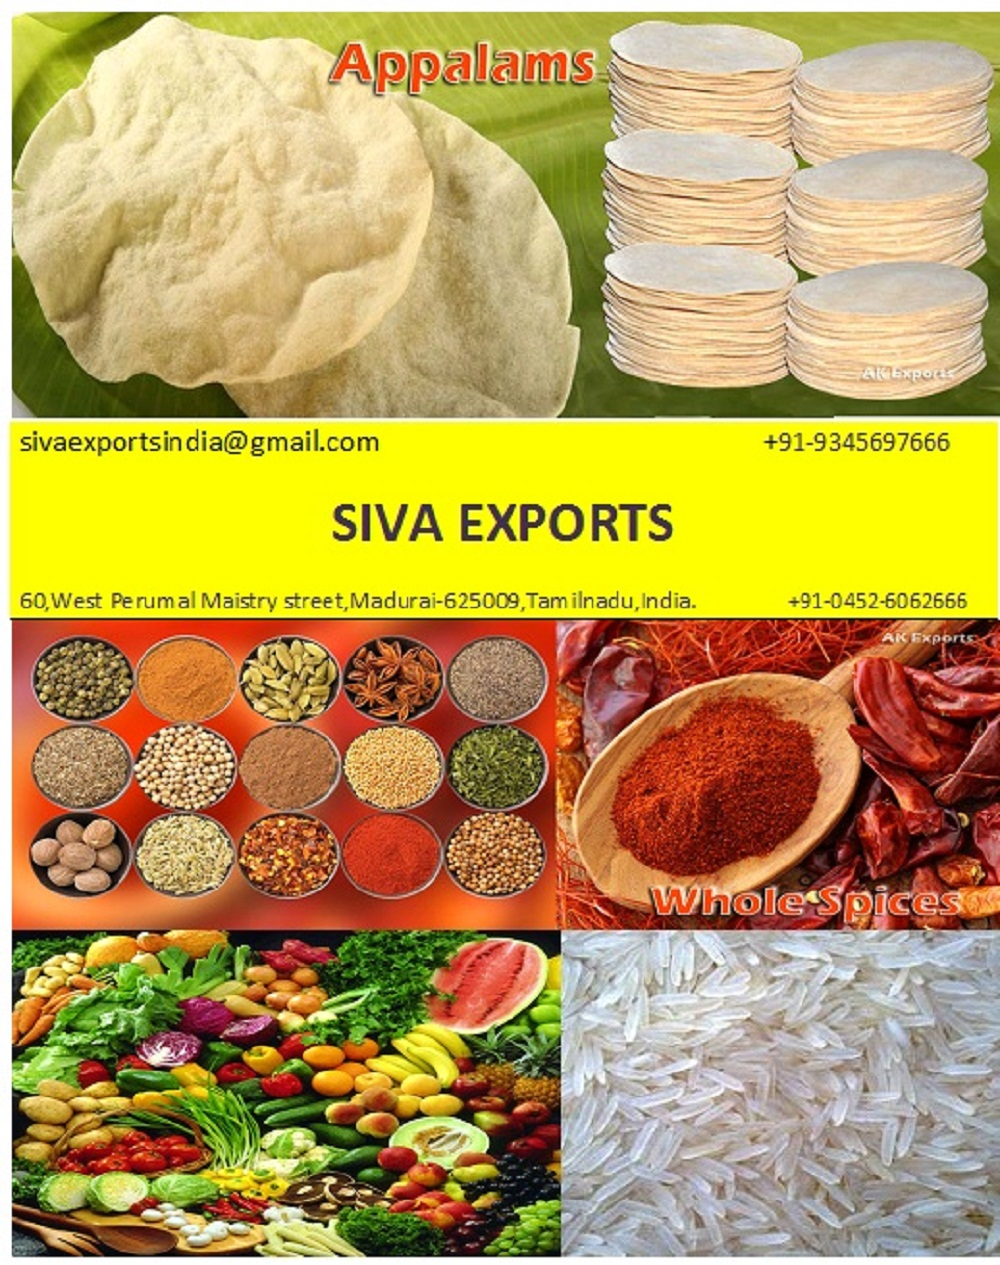 appalam manufacturers in india, papad manufacturers in india, papadum manufacturers in india, papadam manufacturers in india, pappad manufacturers in india, pappadum manufacturers in india, pappadam manufacturers in india,